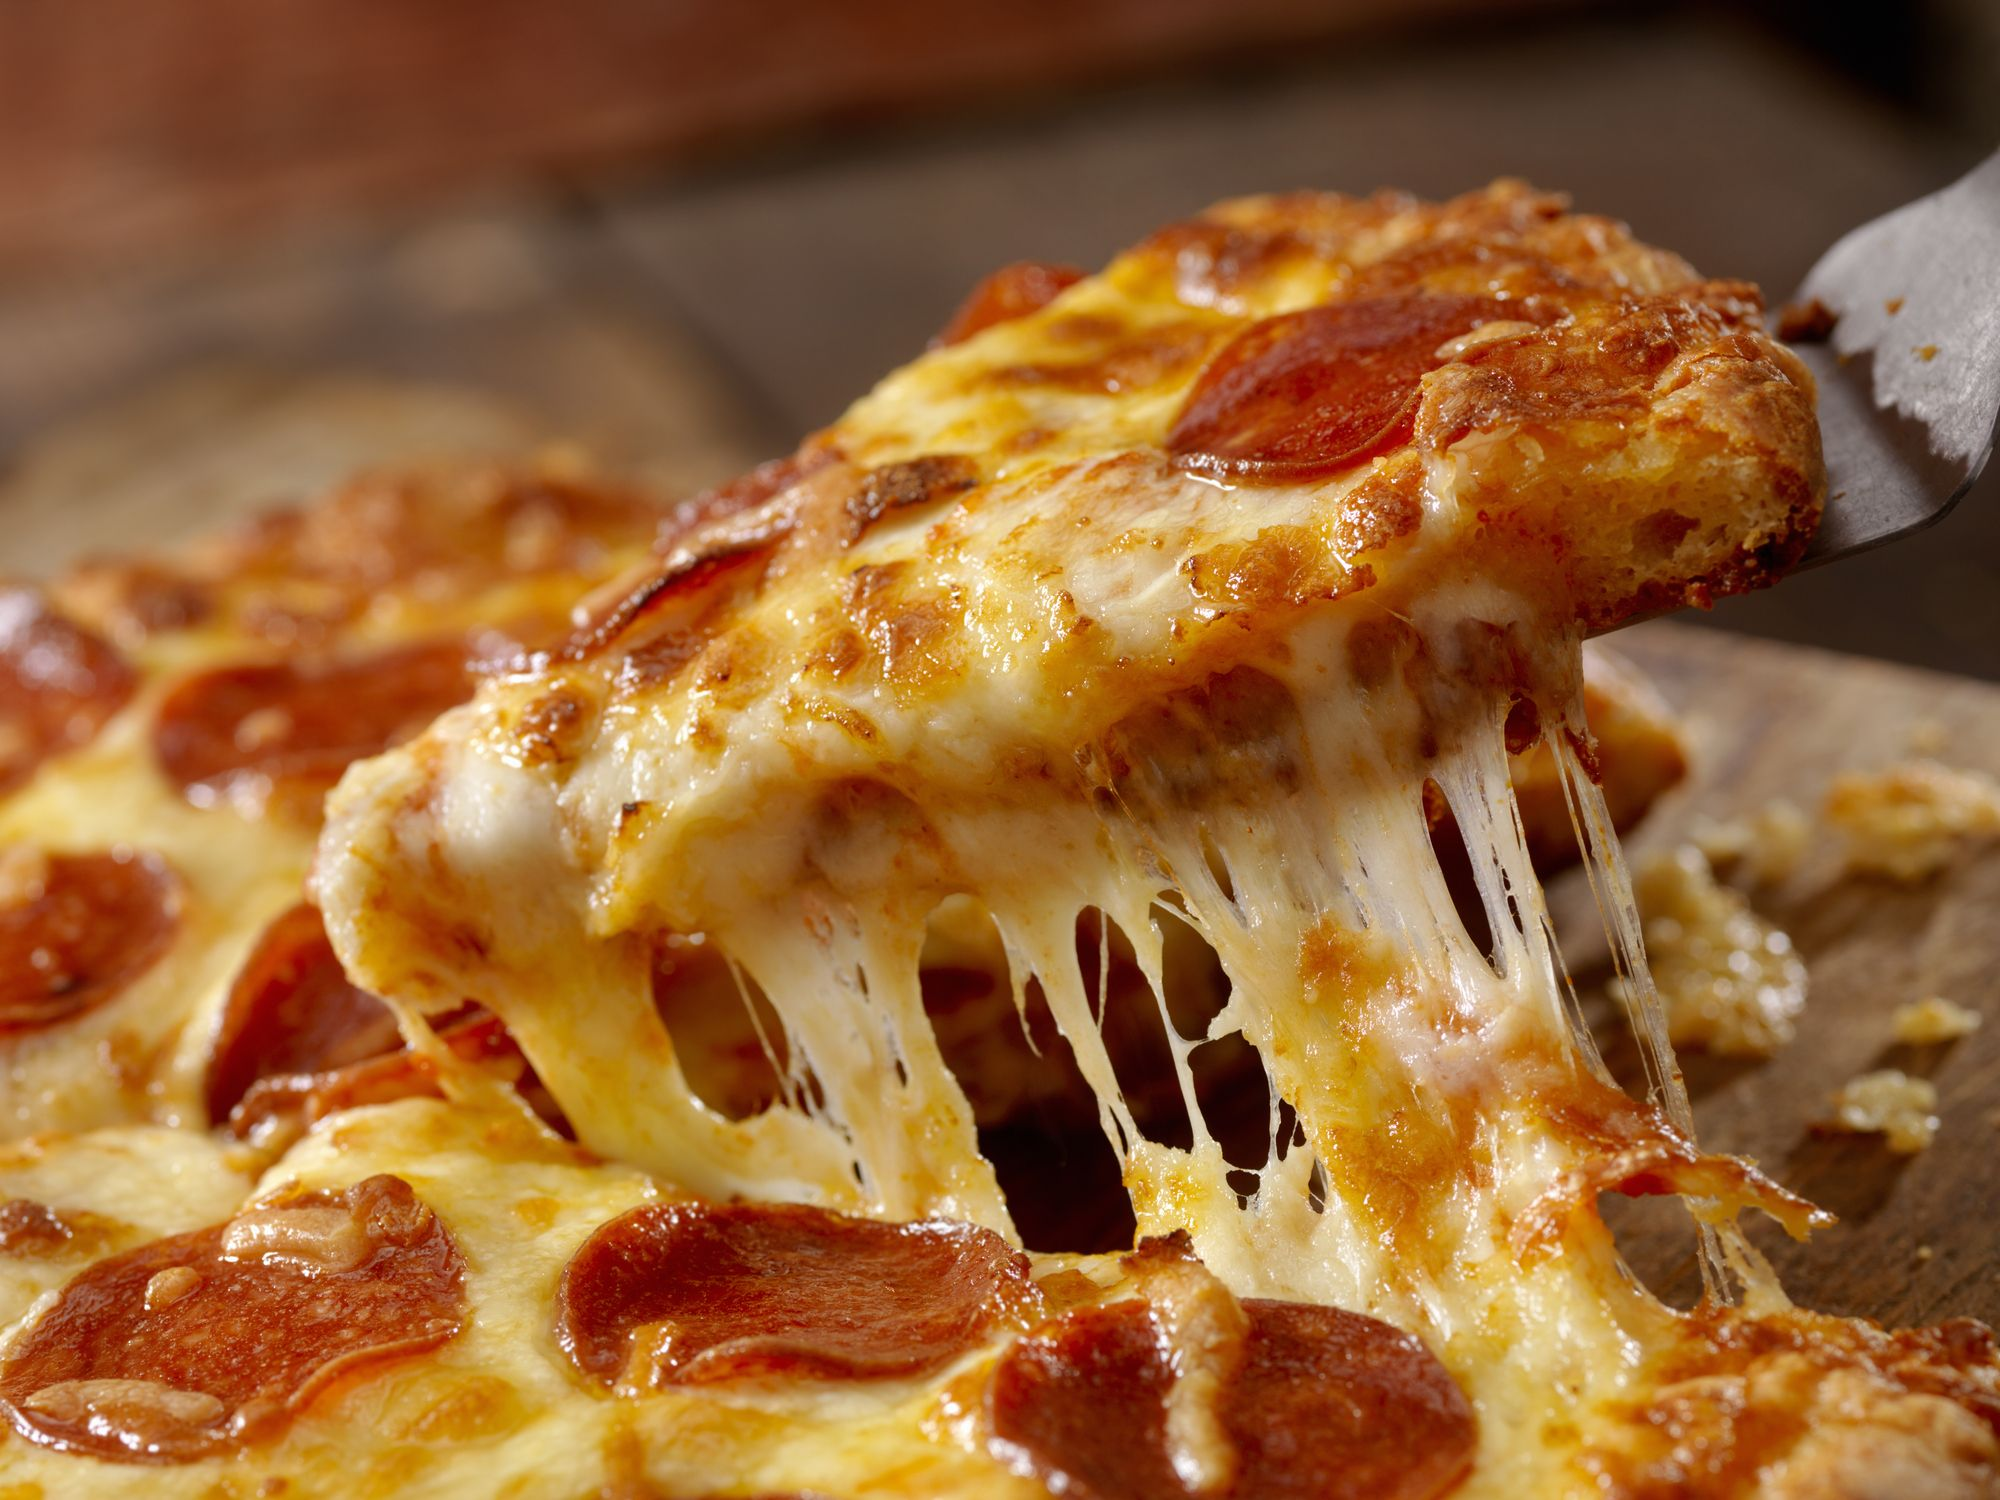 No, Pizza Chains Are Not Using Glue To Make Cheese Pulls Stretchier